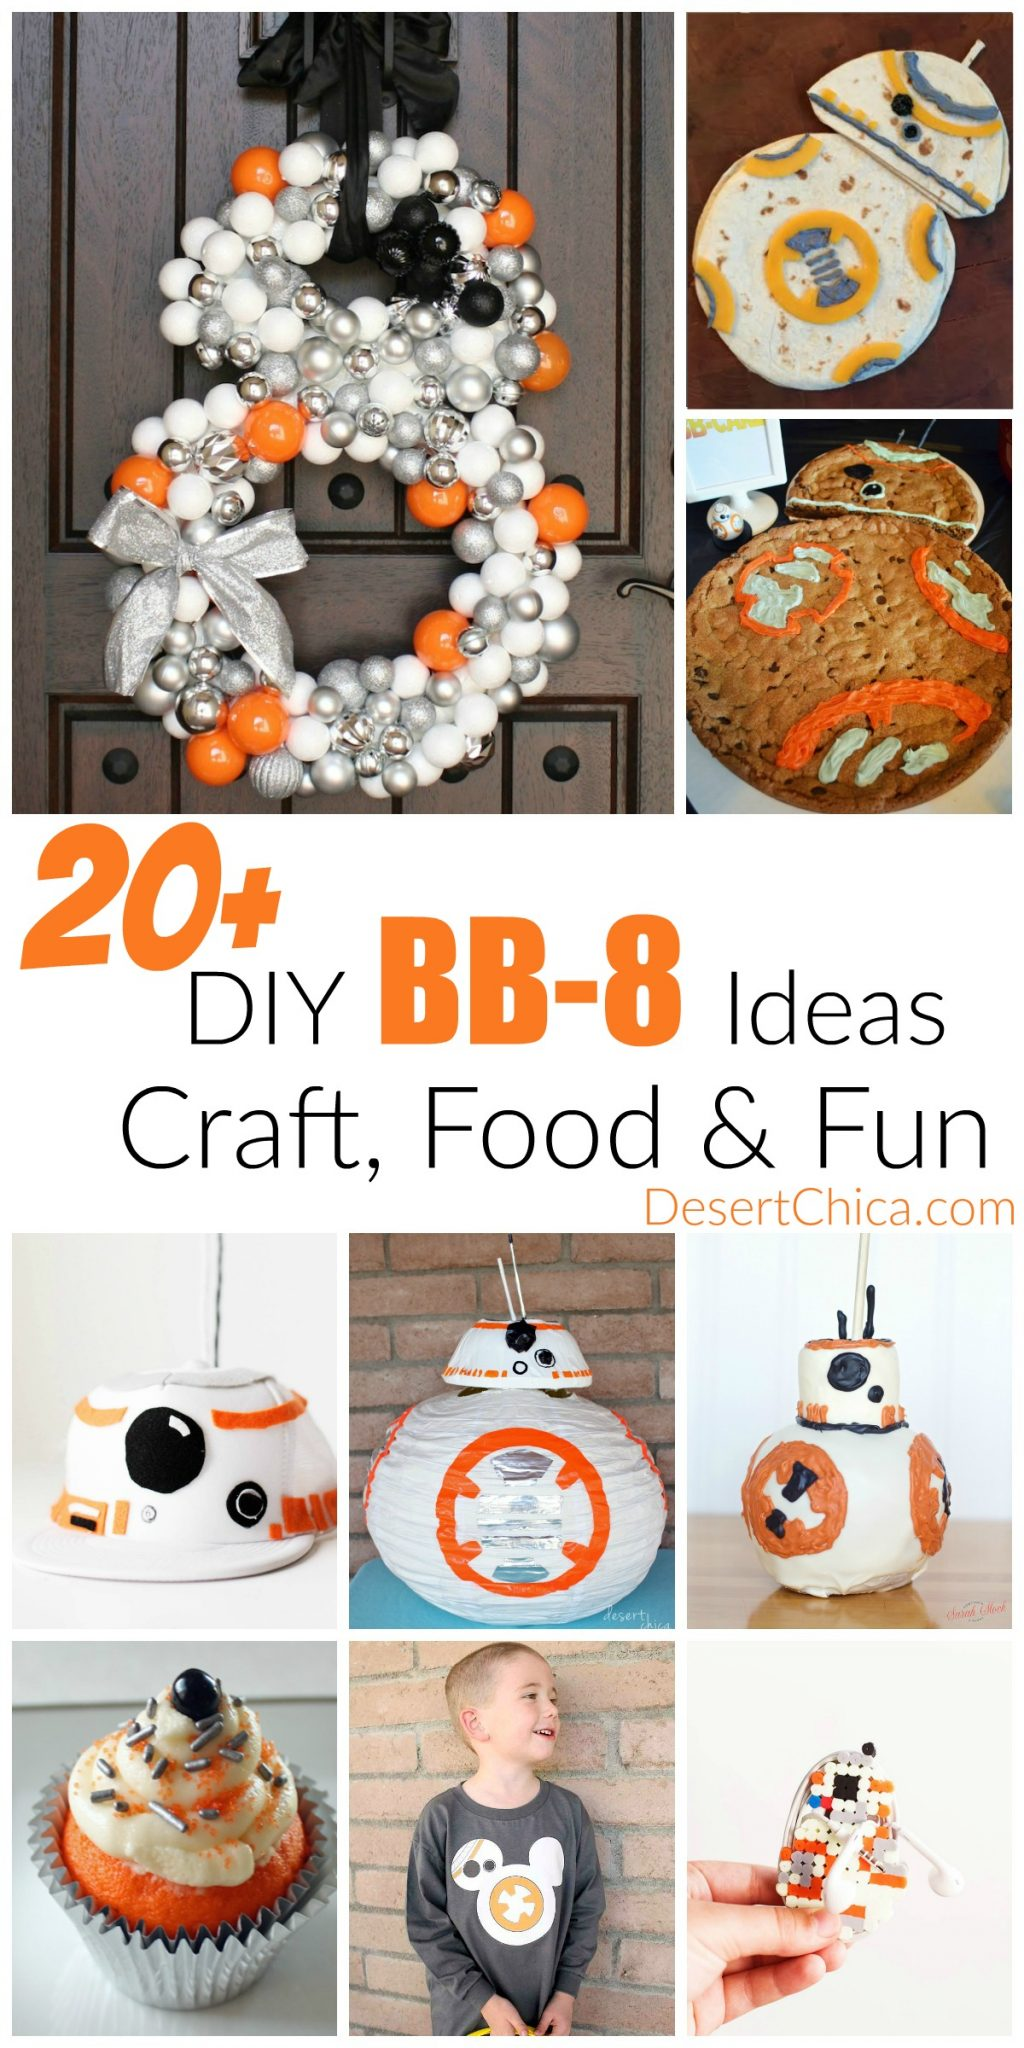 20 bb-8 ideas from food to crafts and fun